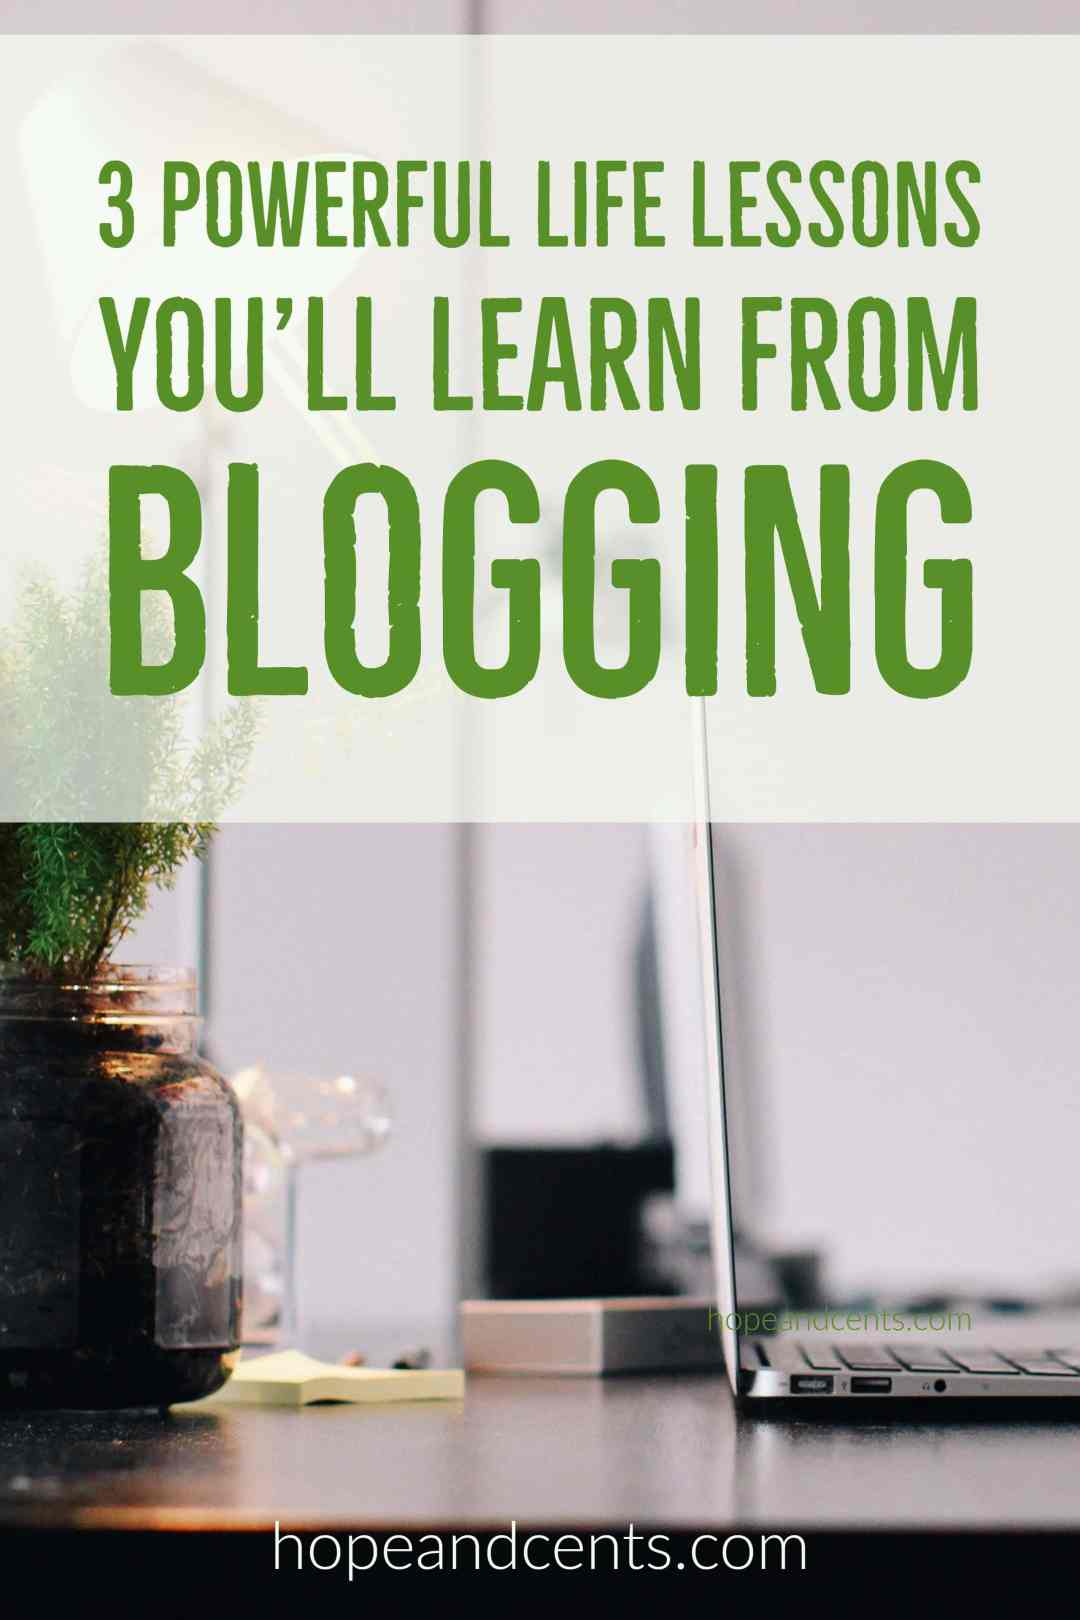 Blogging is like taking a crash course on several topics. But the most impactful lessons you'll learn have nothing to do with blogging at all. #blogging #blog #entrepreneurship #motivational